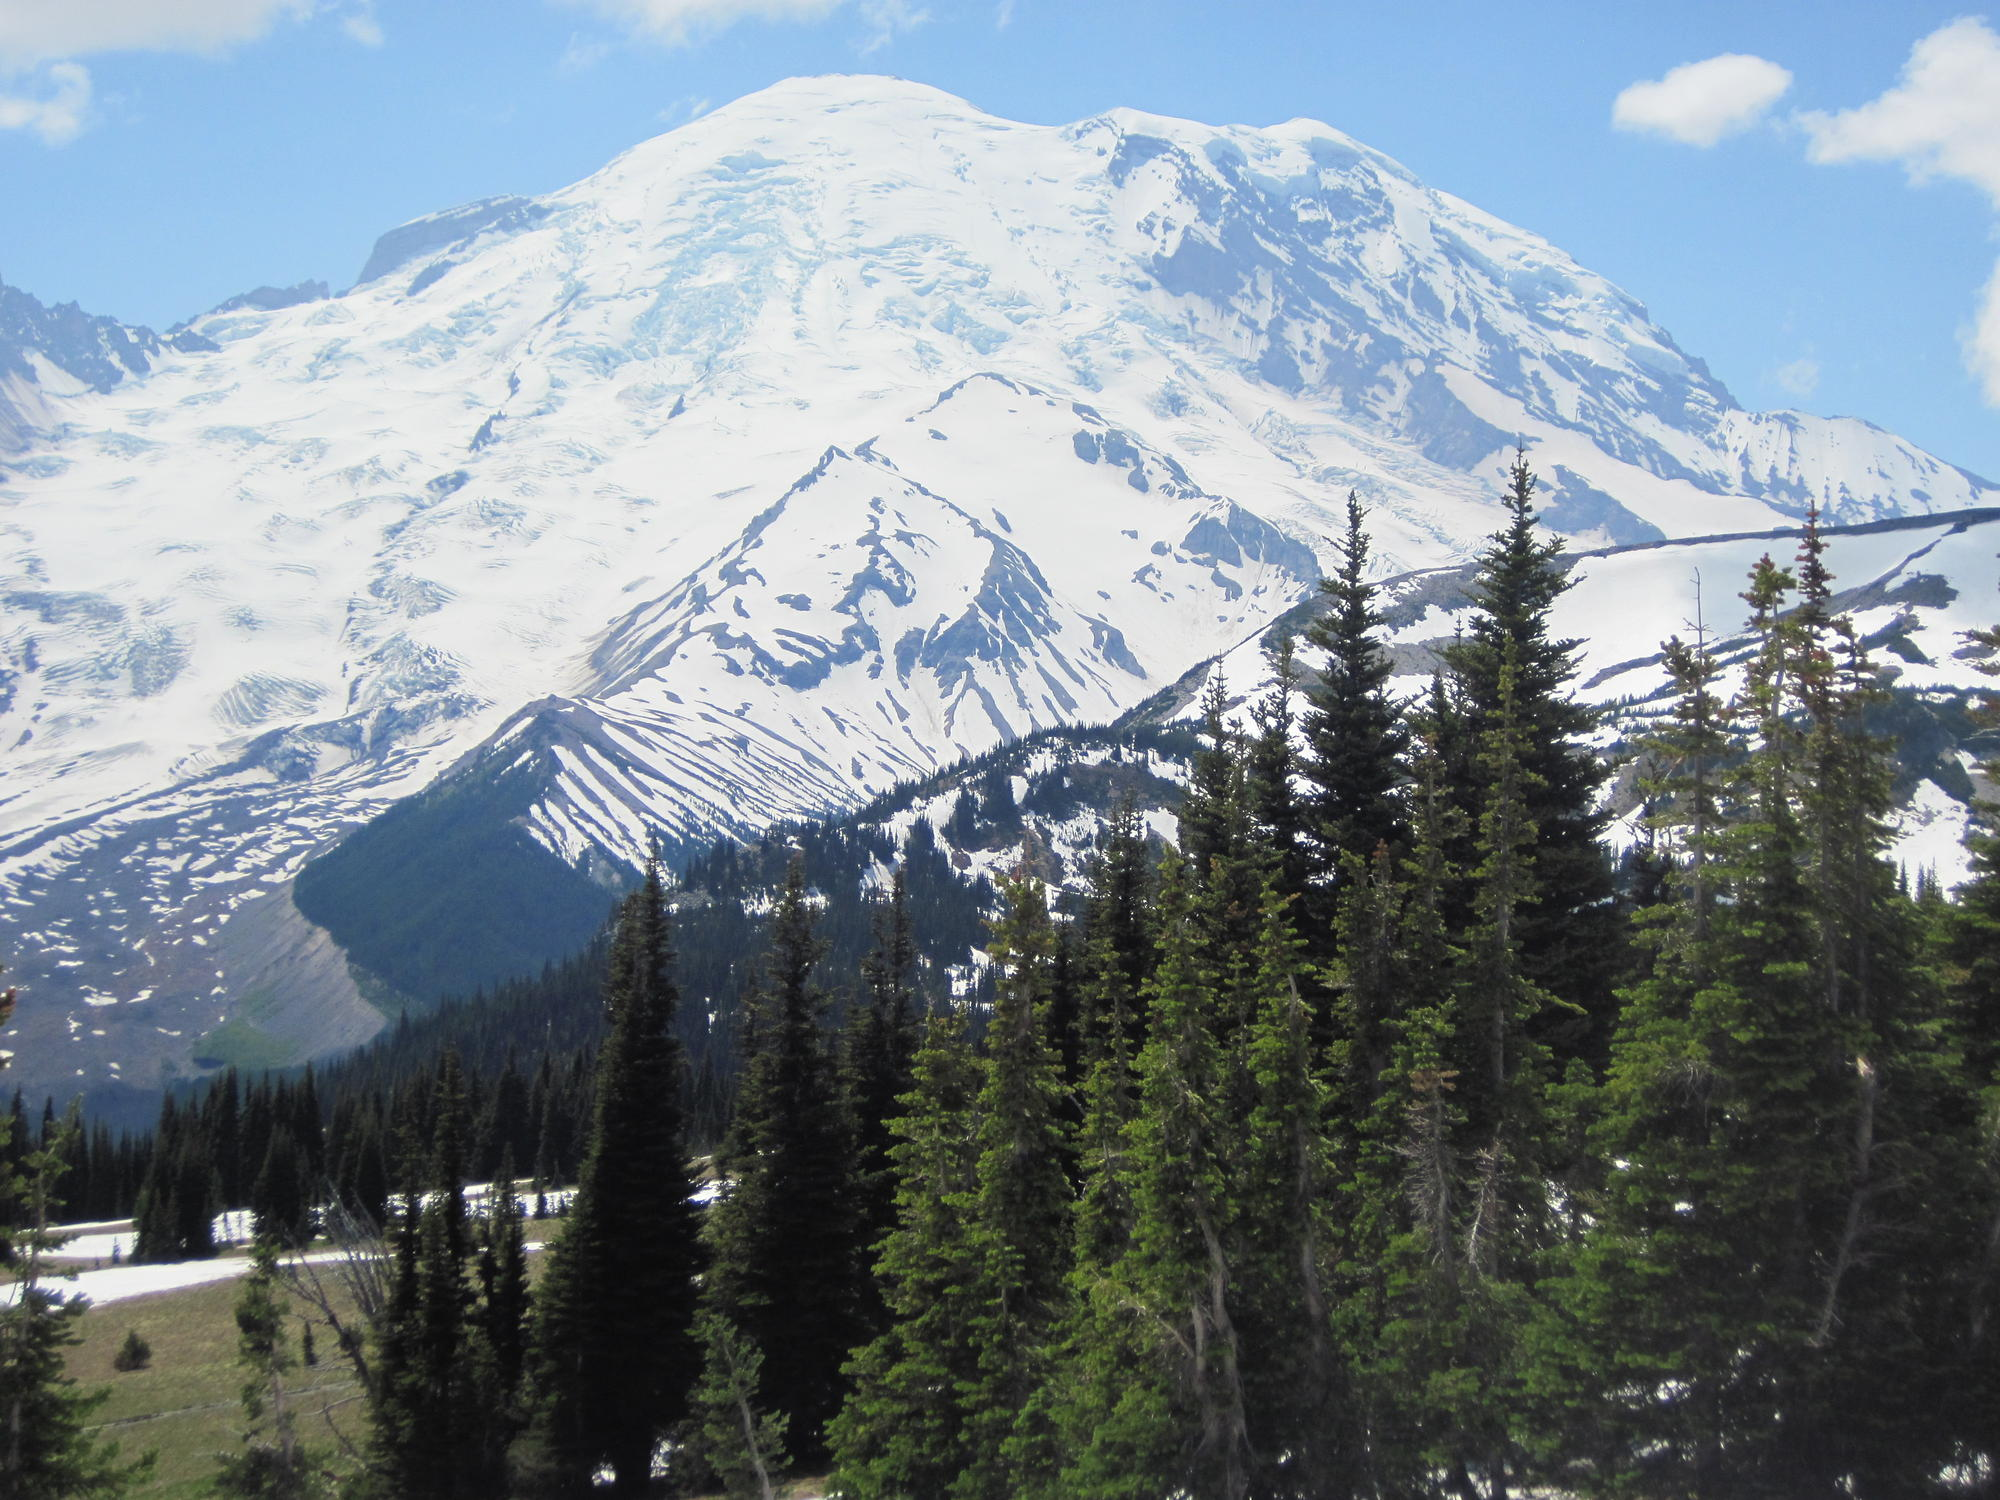 city of mount rainier essay Camping available in rainier, close to the boat launch call 503 556-7301 for reservations about rainier, oregon this area shares an amazing variety of history including the 'lewis & clark trail' and a view of our namesake mount rainier and the impressive view of the northwest volcano, mt st helens.